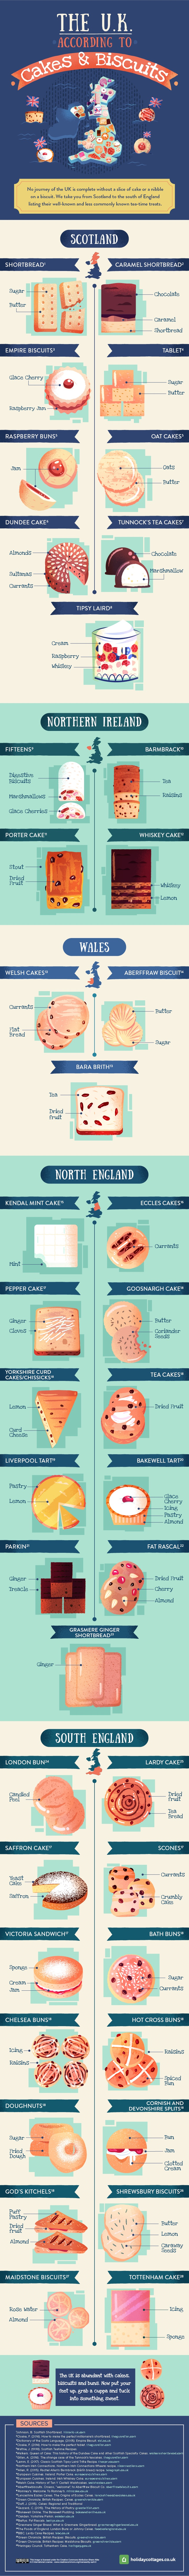 design-the-u.k.-according-to-cakes-and-biscuits